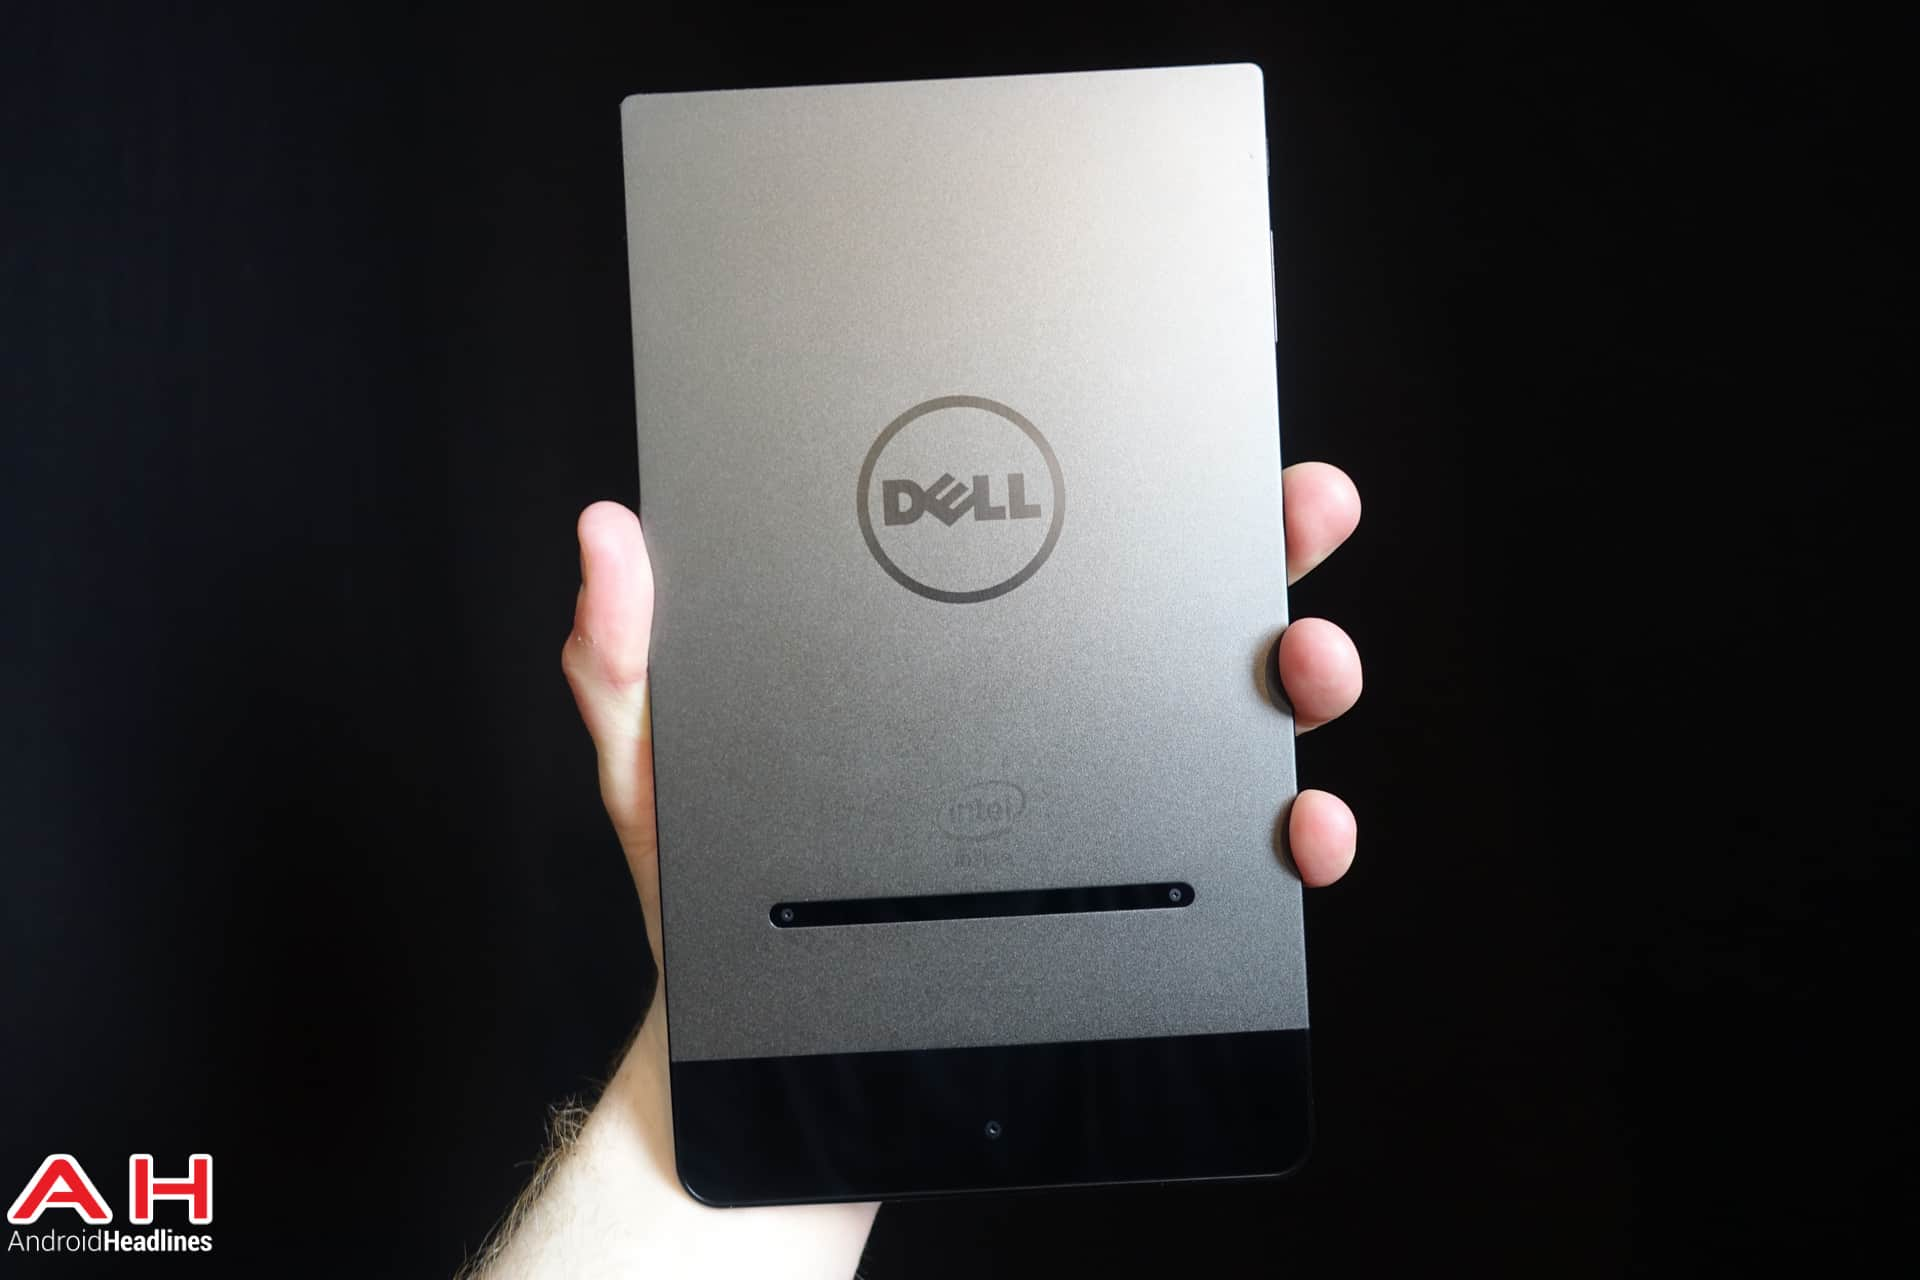 Dell-Venue-8-7840-AH-03546